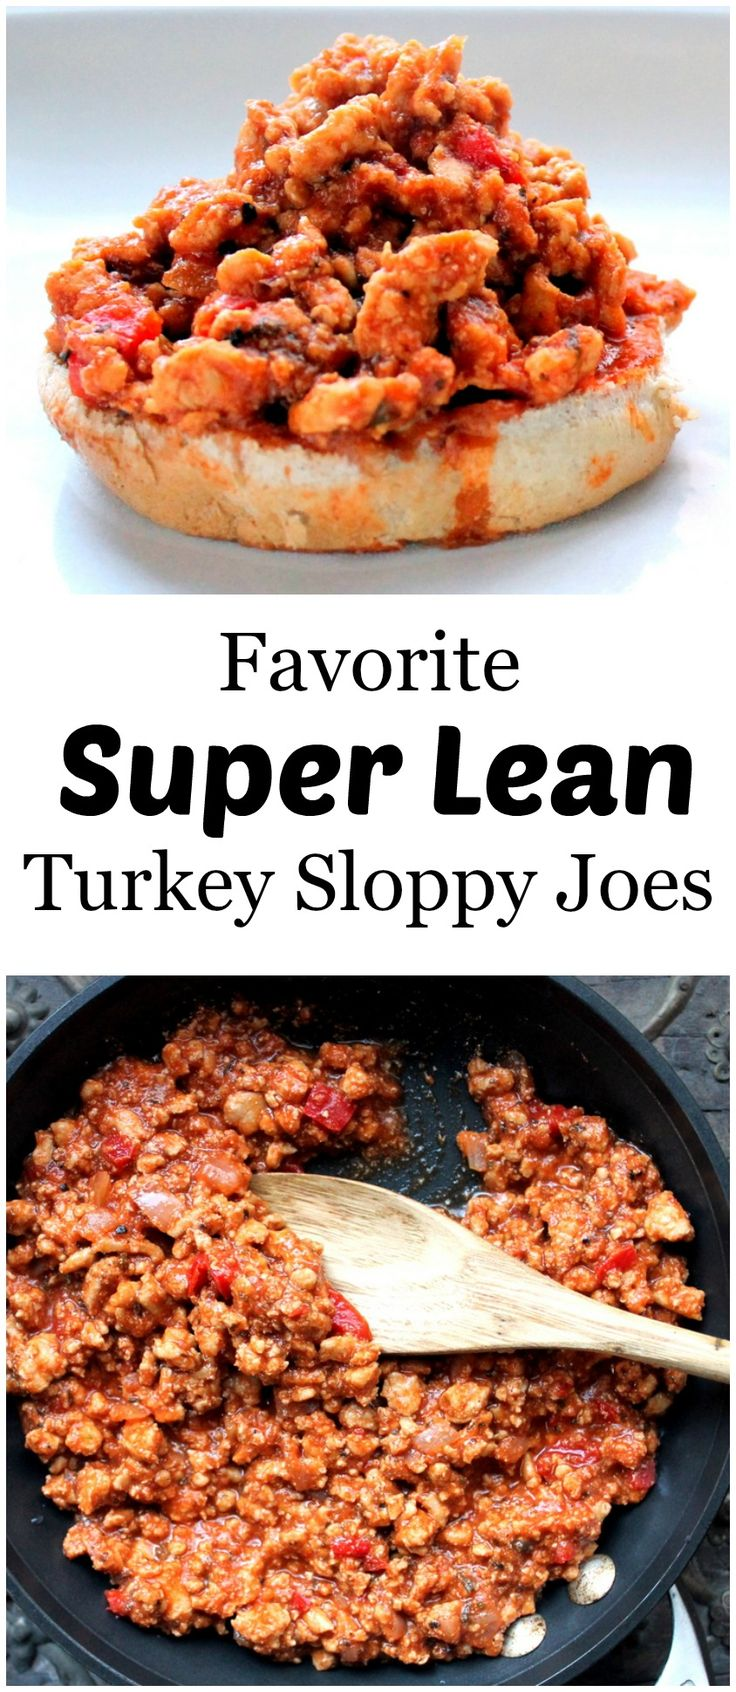 Favorite Super Lean Turkey Sloppy Joes // Ambitious Kitchen